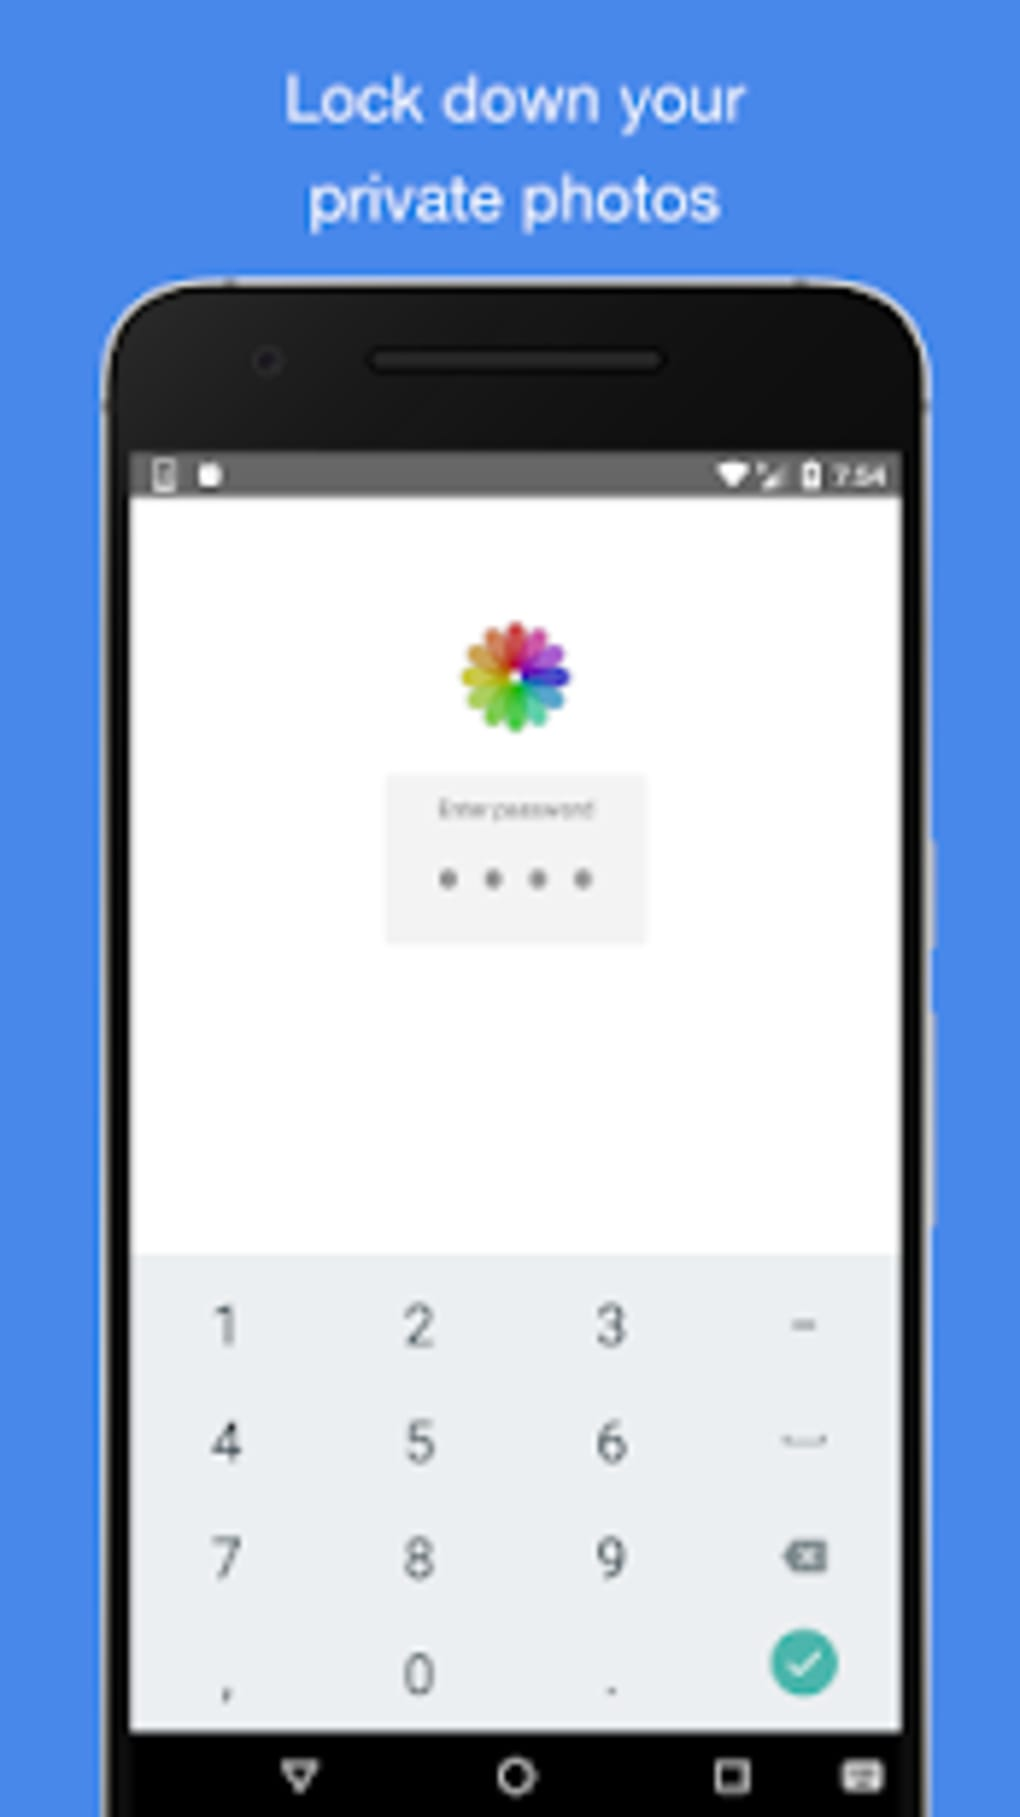 A+ Gallery - Photos Videos for Android - Download